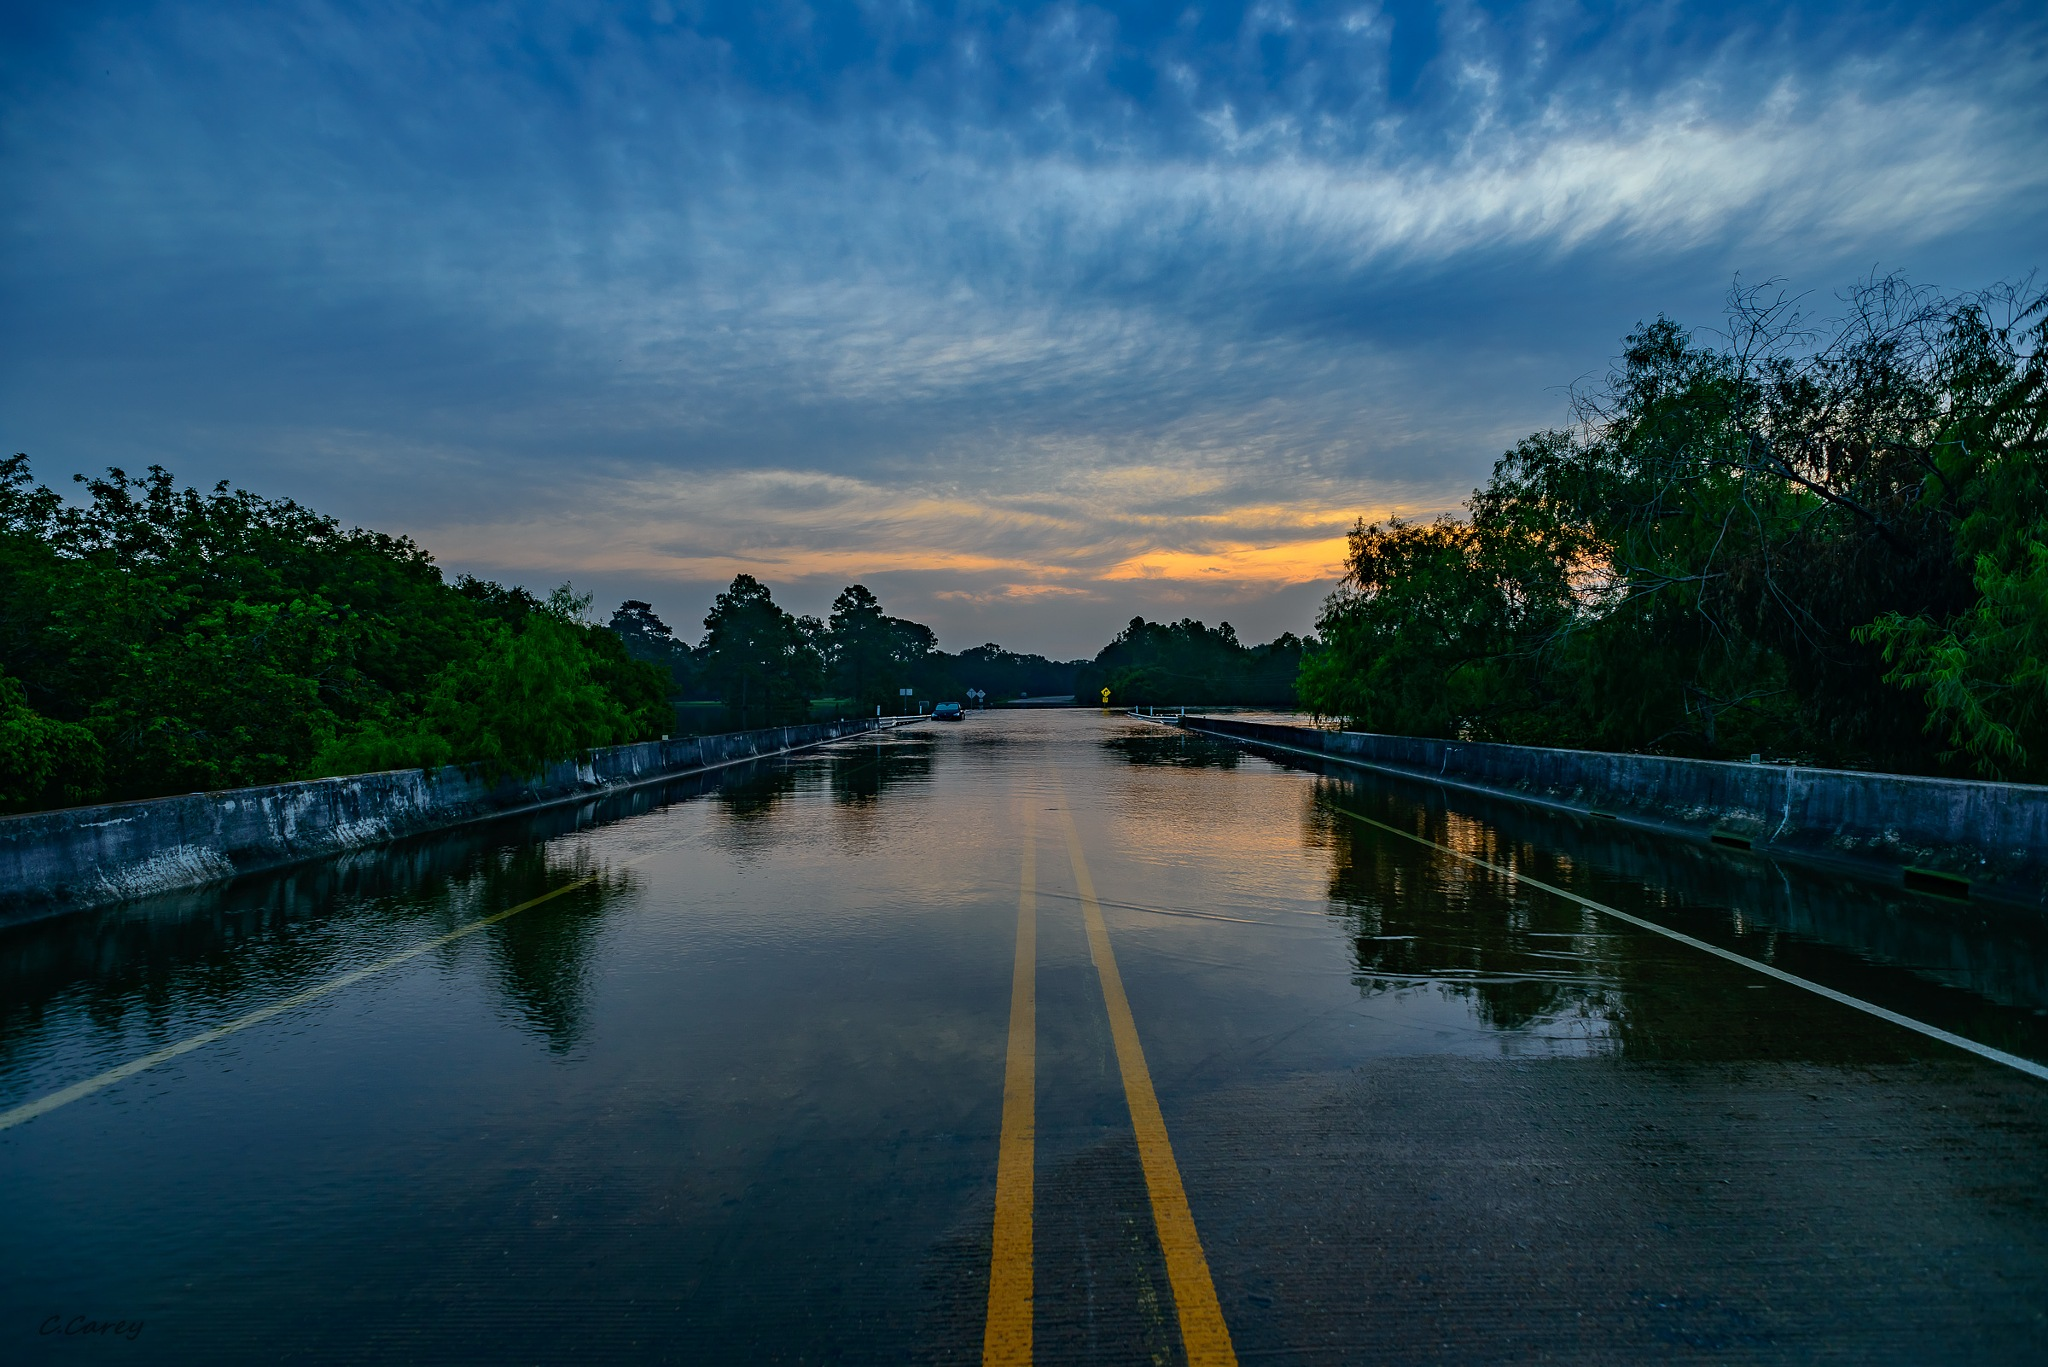 After the Storm by Chris Carey